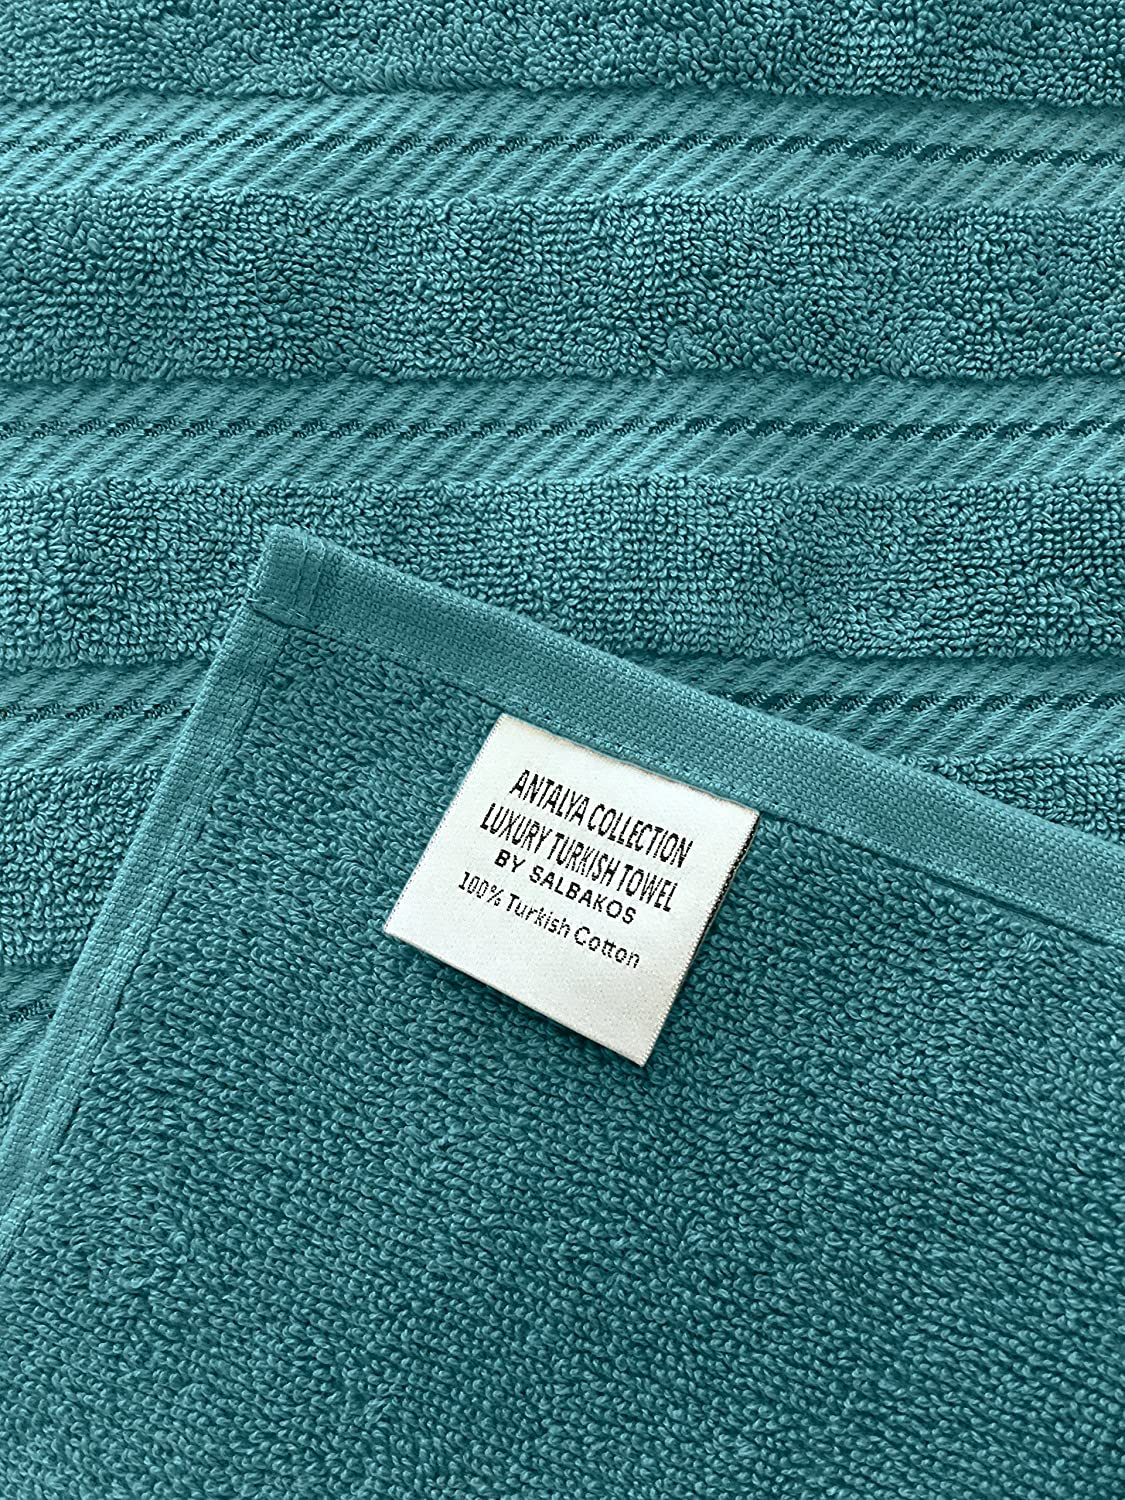 Antalya Bath Towel Set Of 4 Made In Turkey 2 Ply Yarn Blue Wool Conversion Tables Home Kitchen